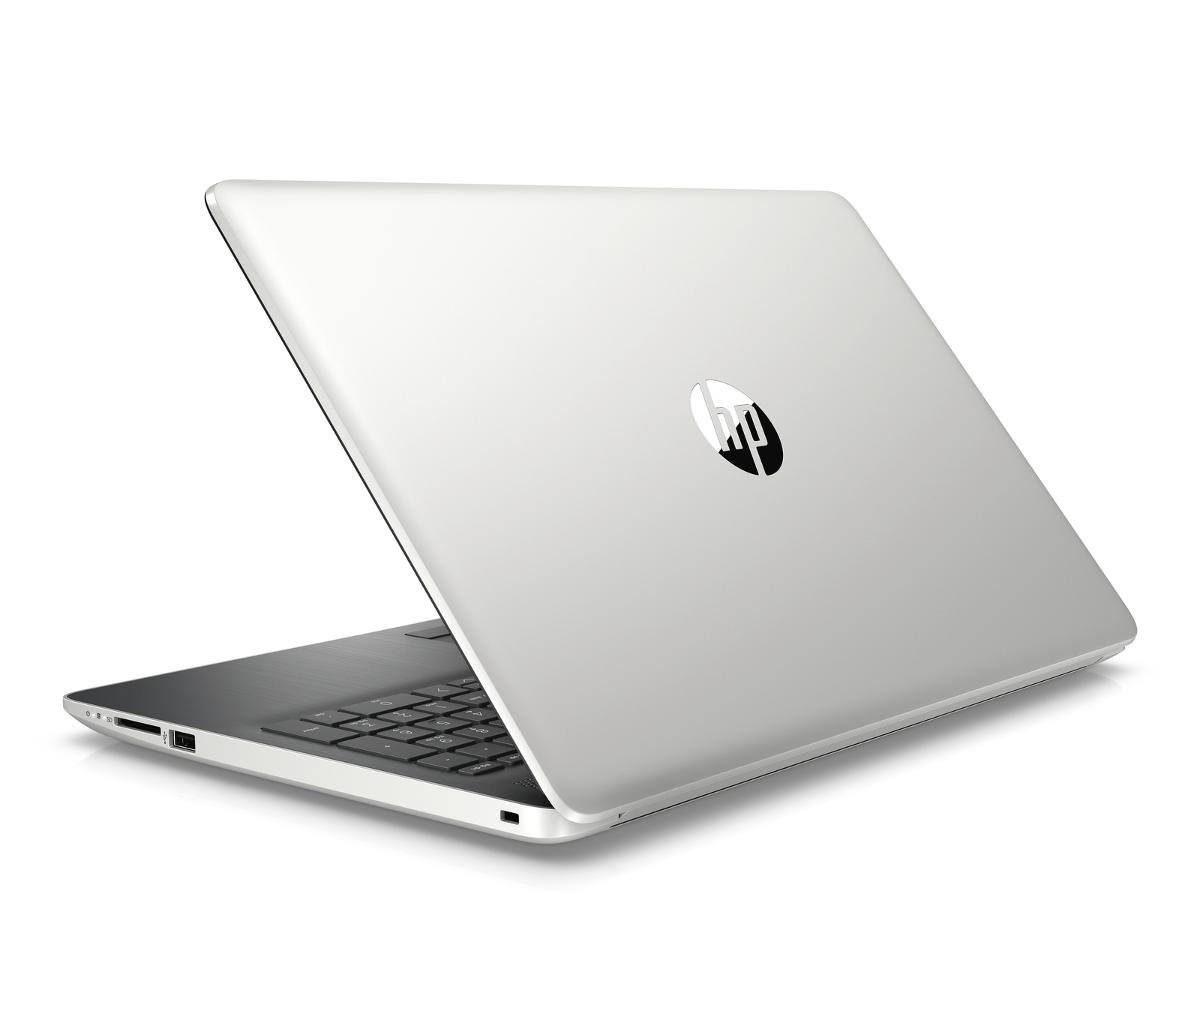 "Laptop HP 15-da0012nw 4TY33EA, i3-7020U, 4 GB RAM, 15.6"", 256 GB, Windows 10 Home"